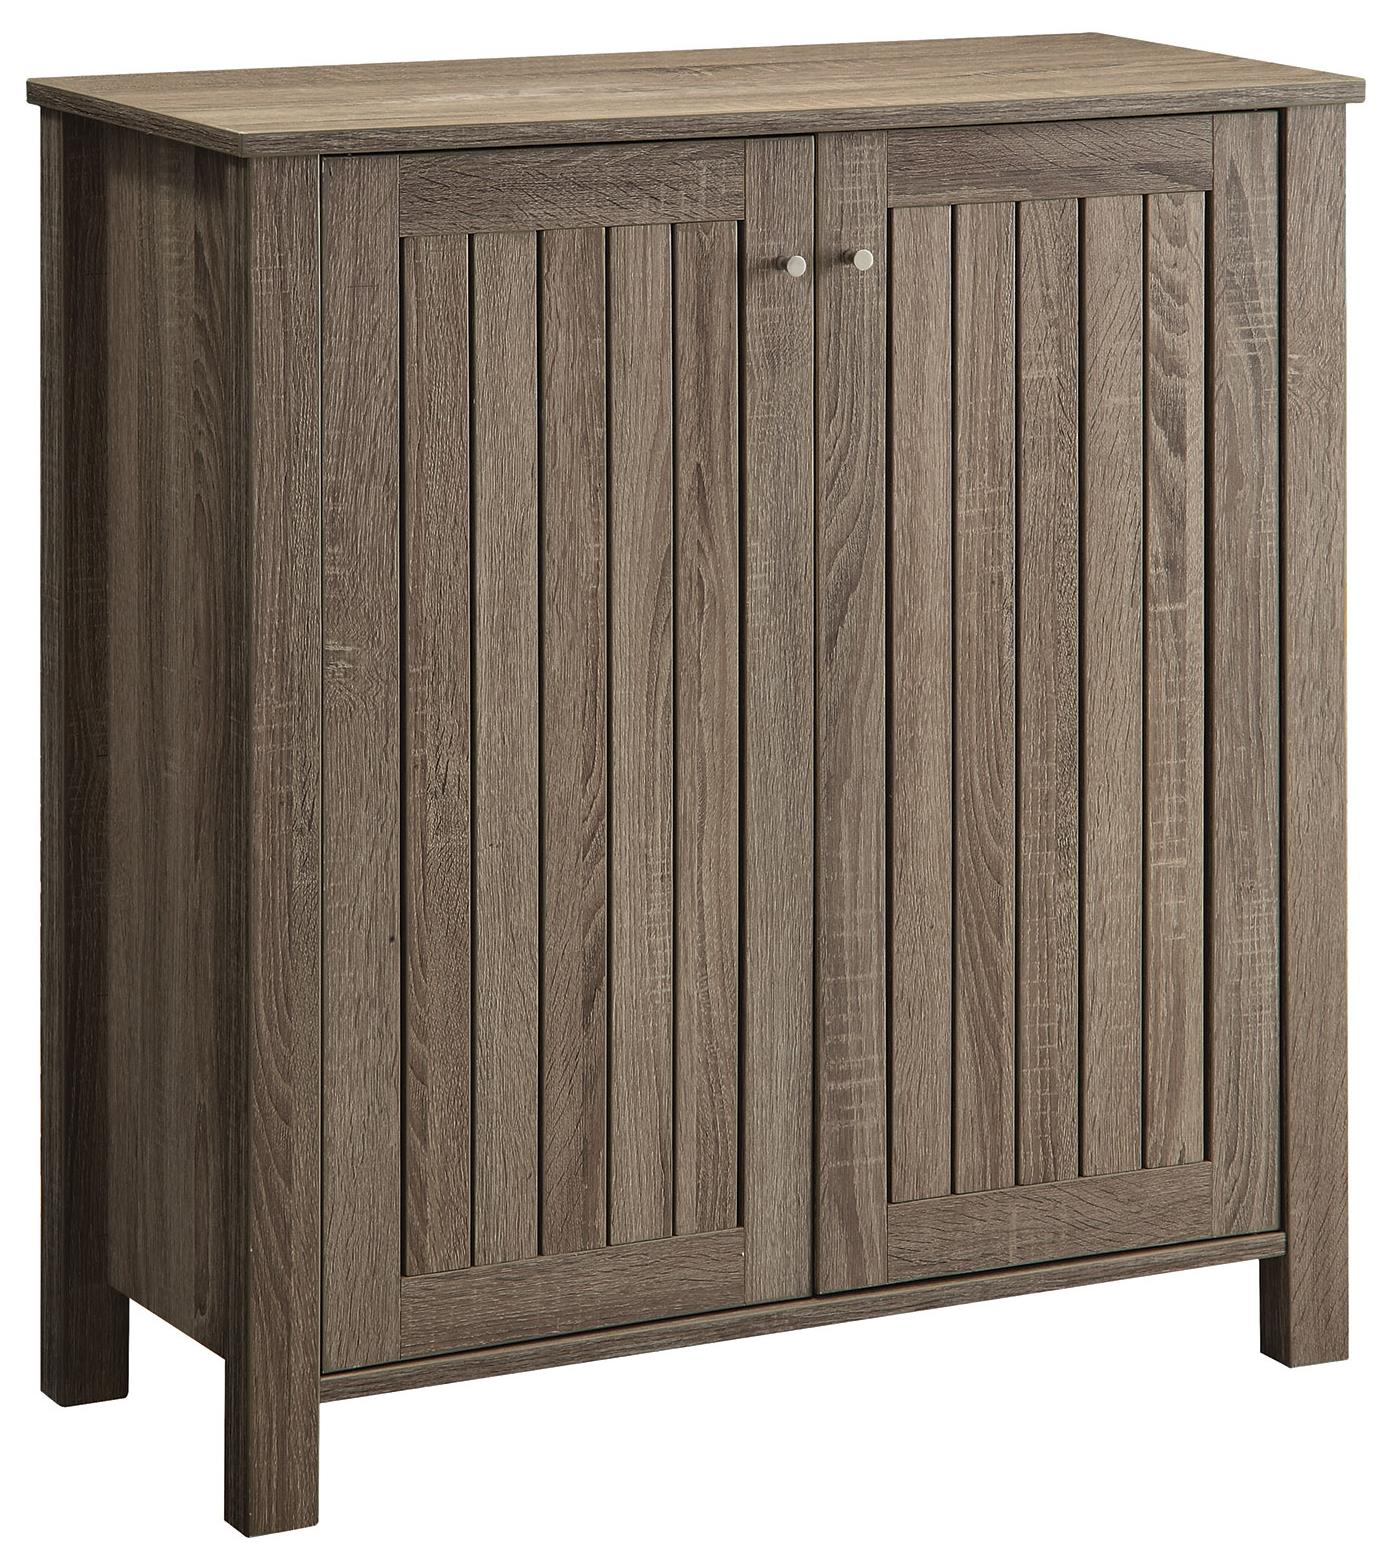 Accent Cabinets Shoe Cabinet/Accent Cabinet by Coaster at Nassau Furniture and Mattress